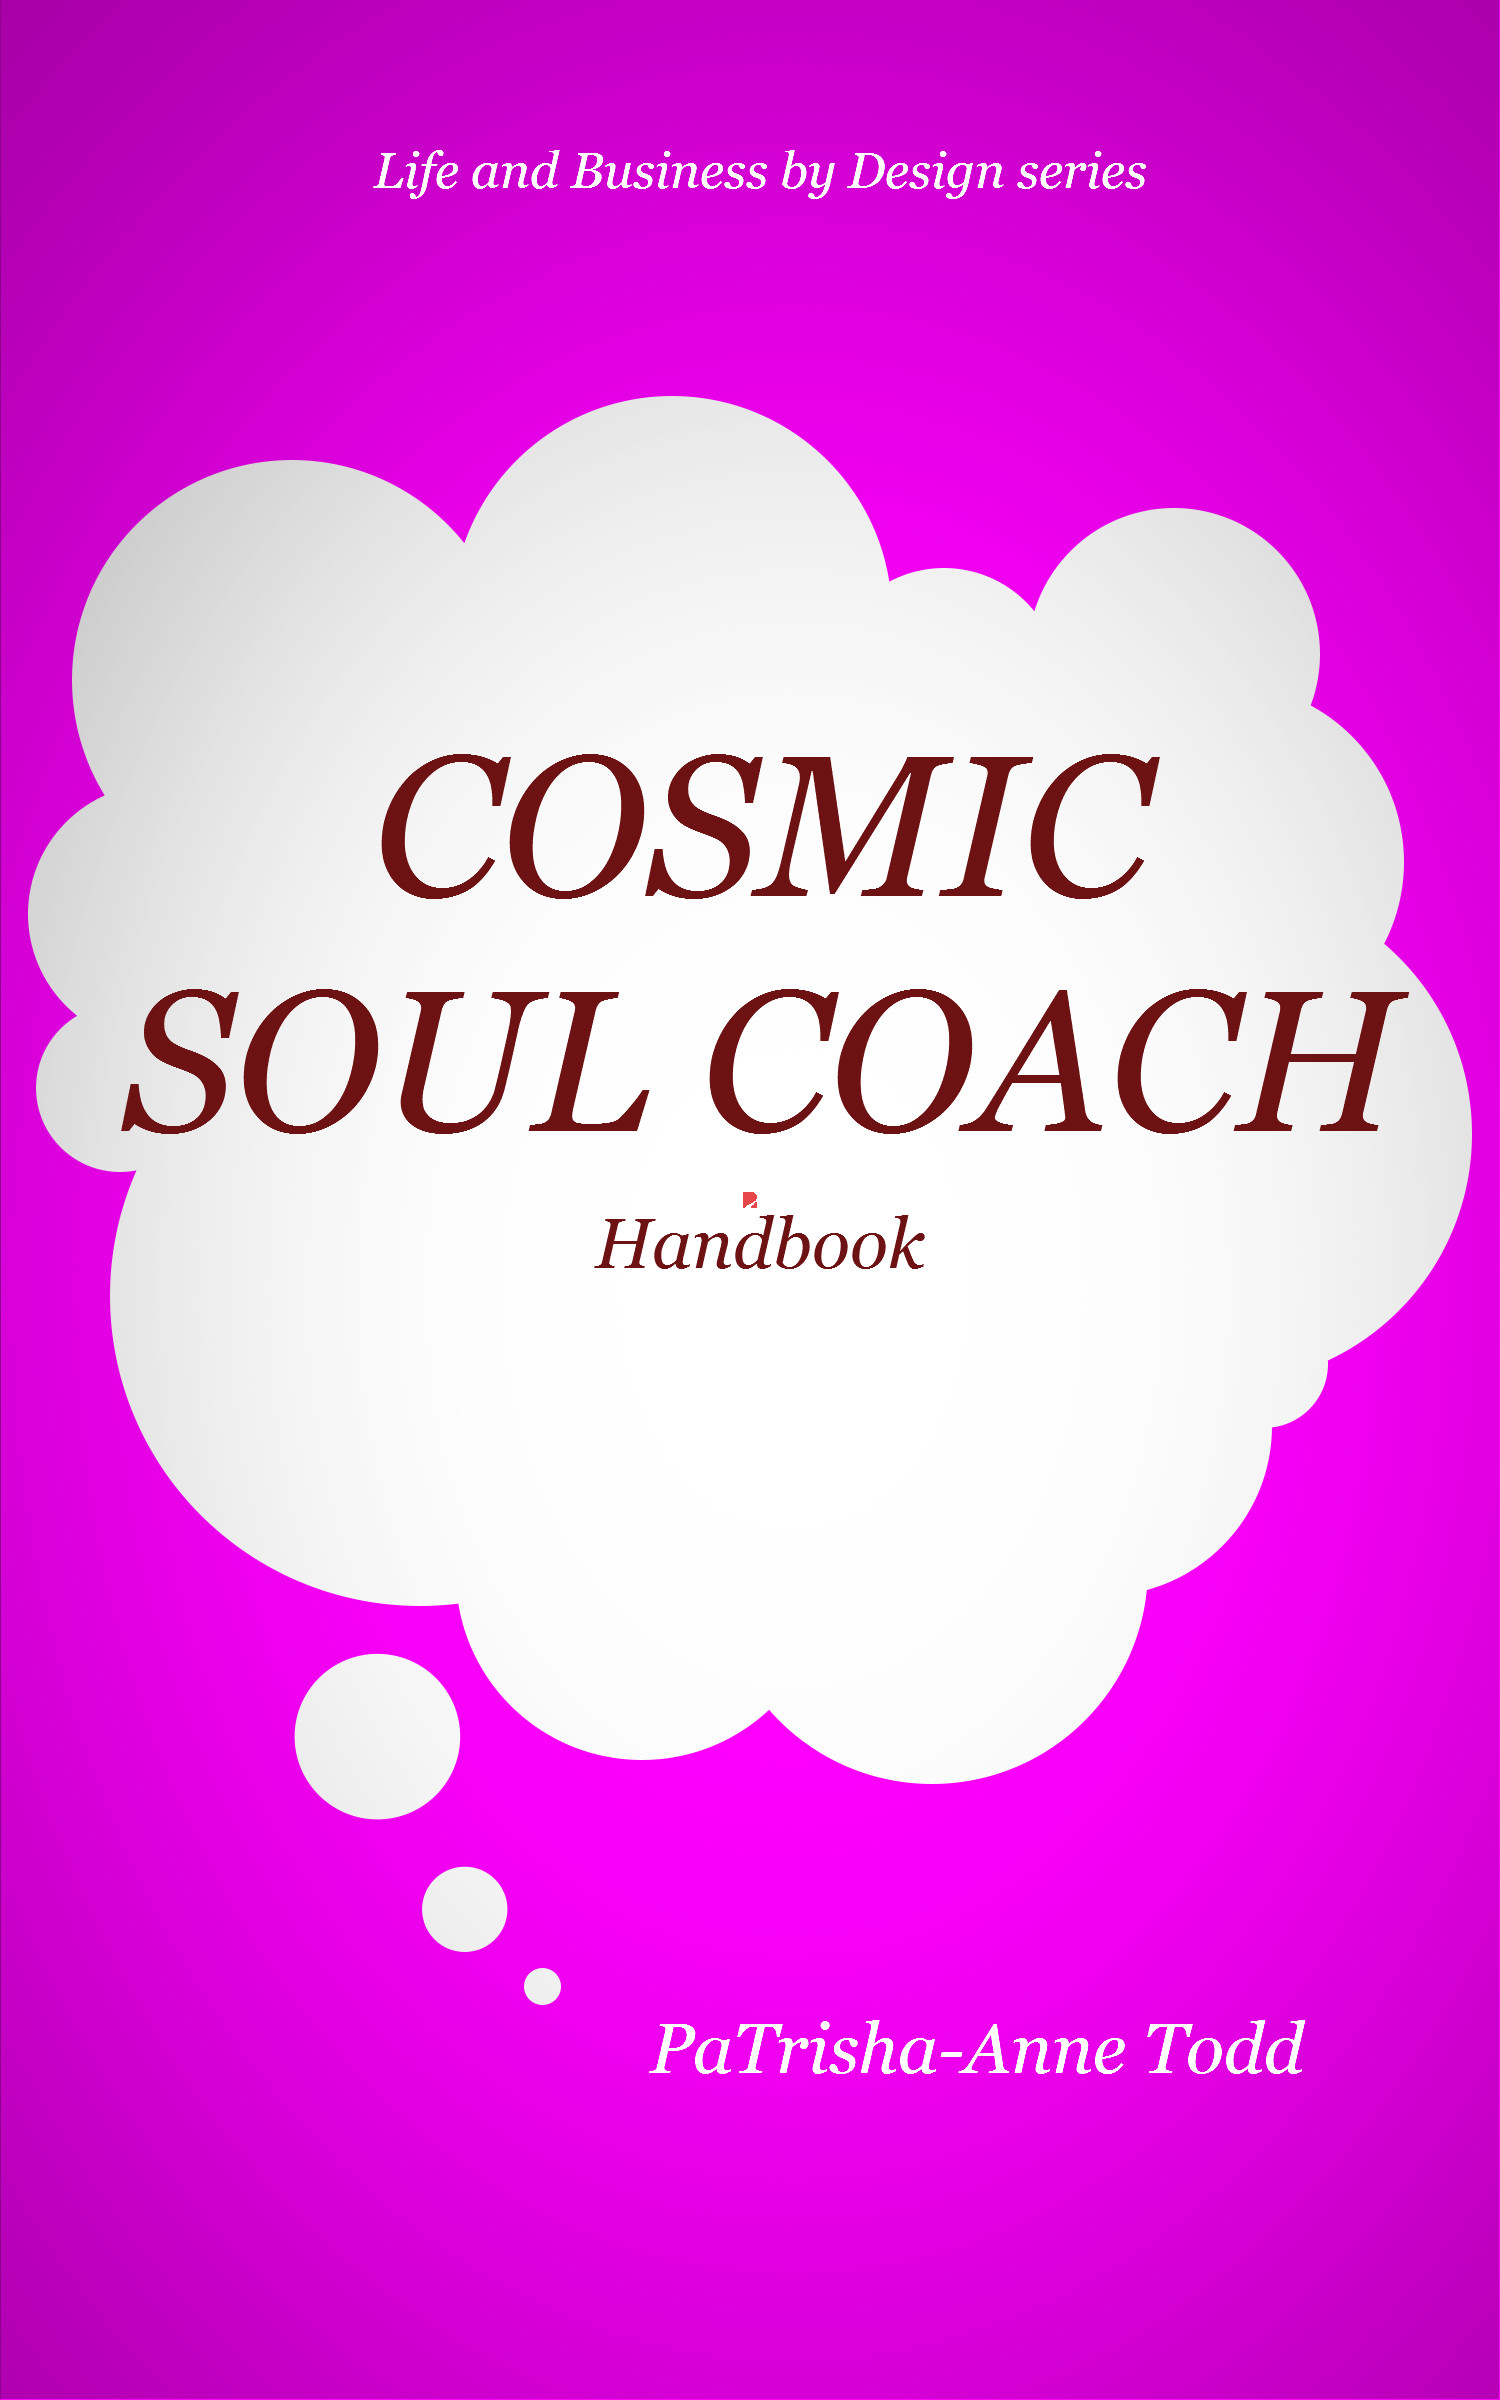 Cosmic Soul Coach Training with Master Cosmic Soul Coach PaTrisha-Anne Todd